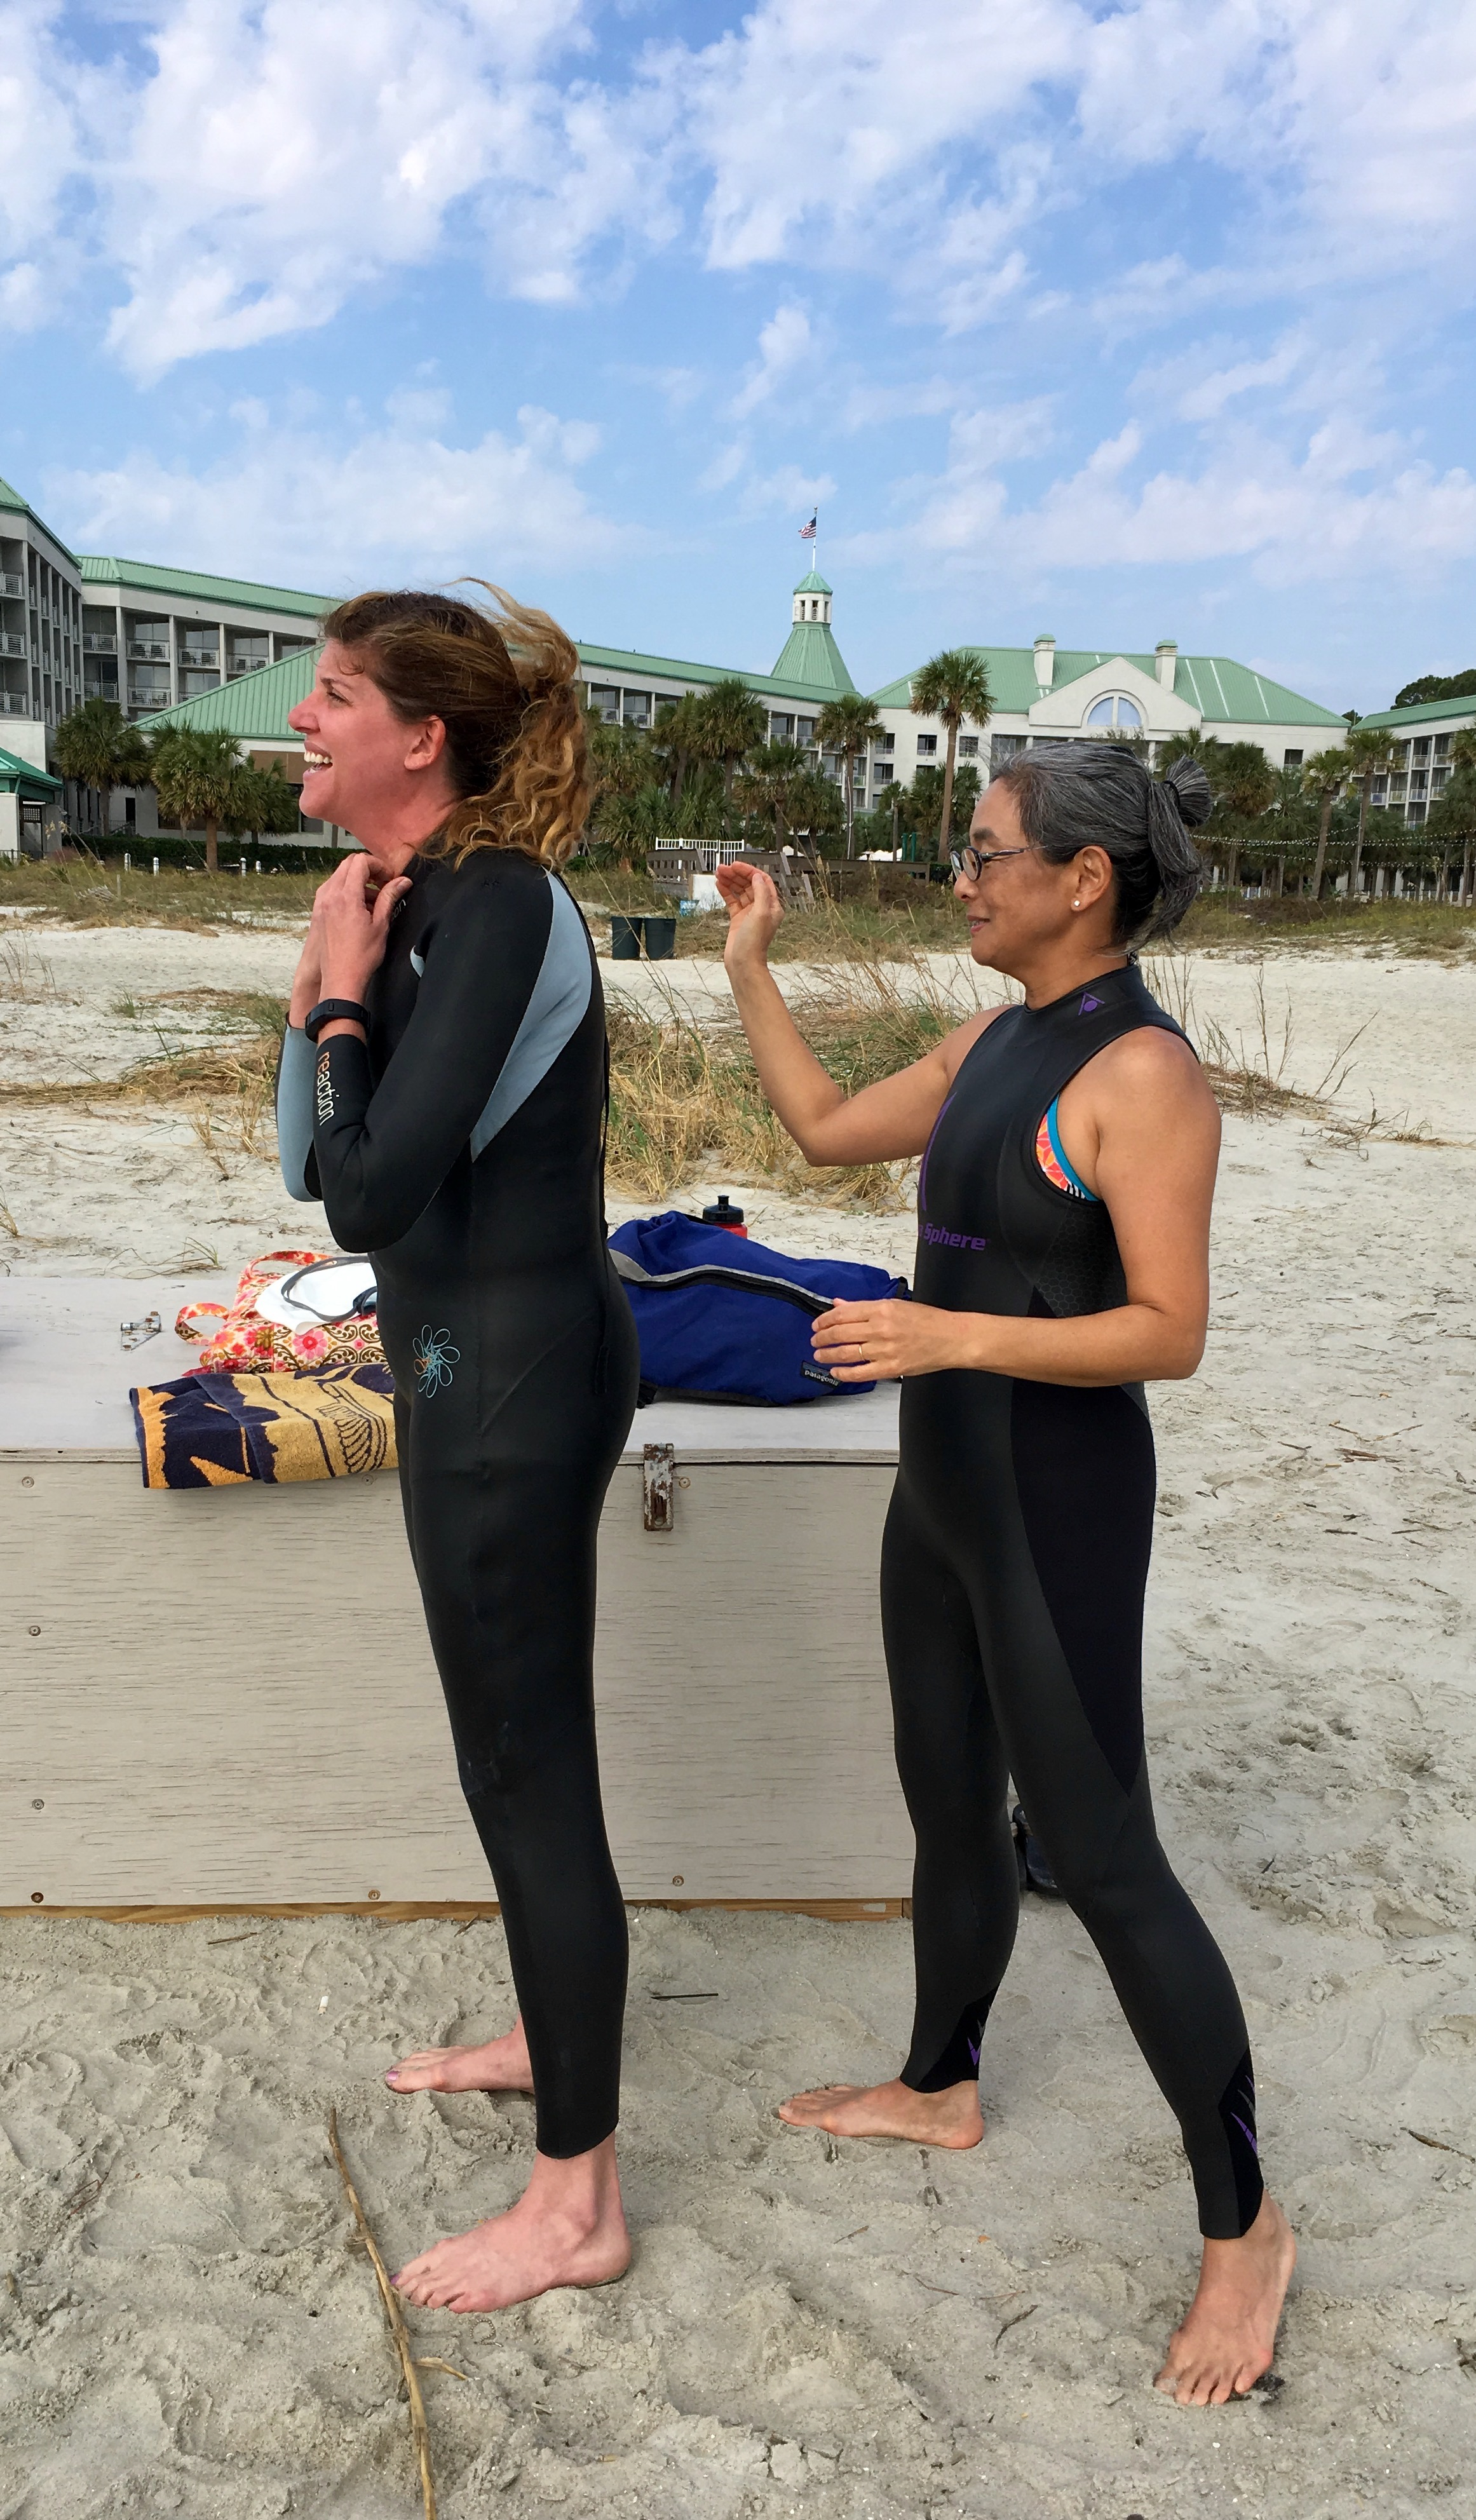 Me, an over-sized wet suit (that I'm thankful for, Al), and Miho.